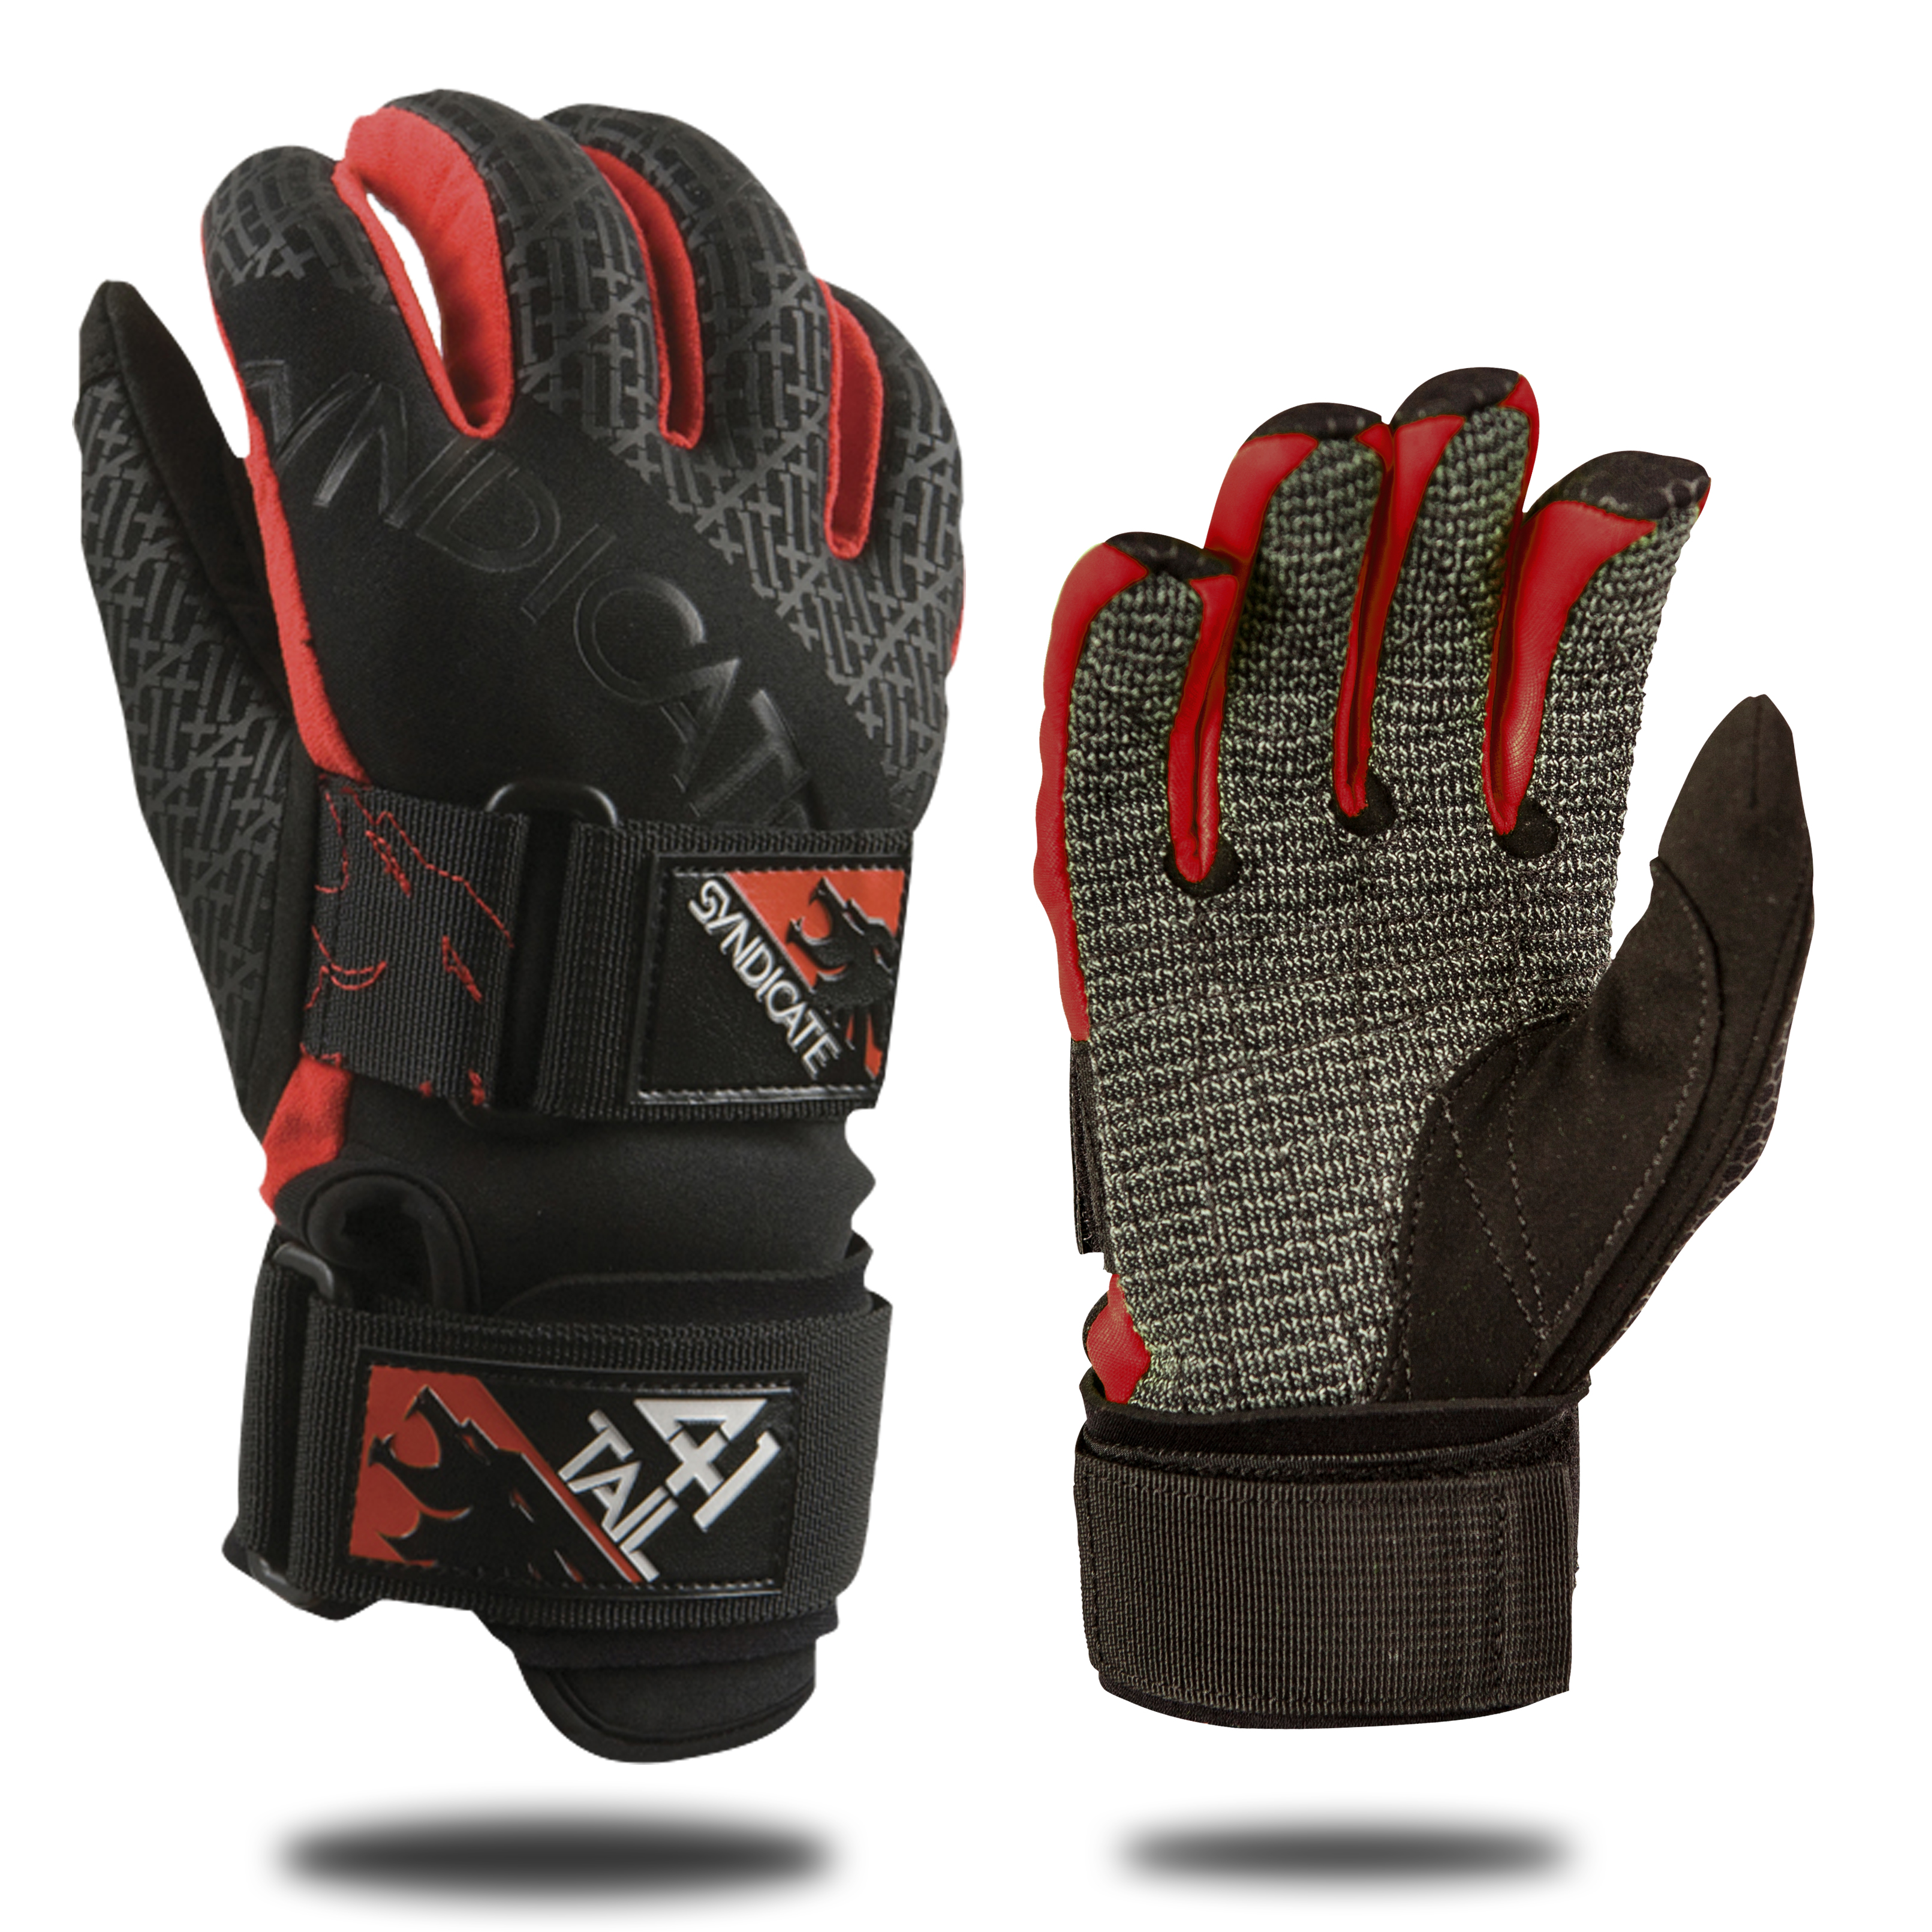 41 TAIL GLOVE - RED HO SPORTS 2016